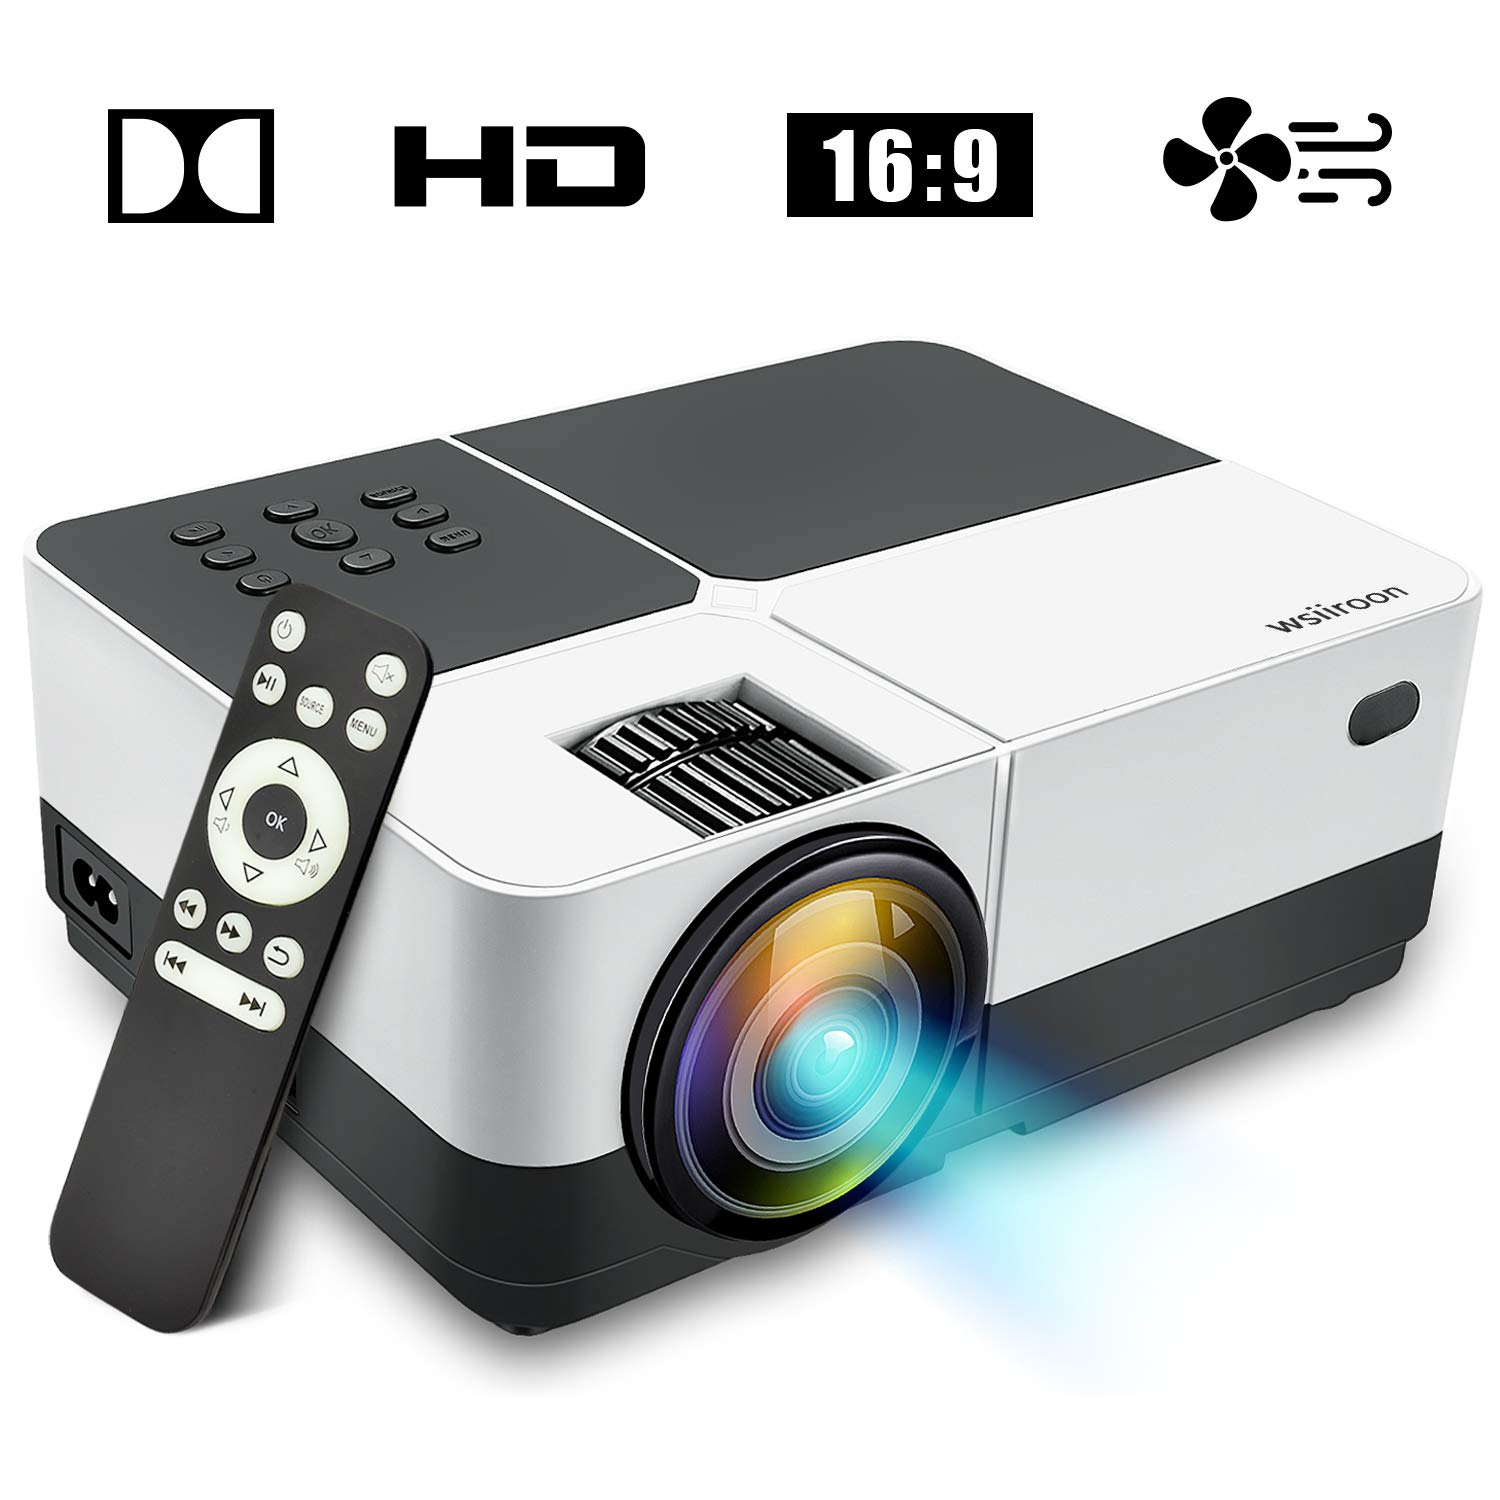 Wsiiroon LED Projector, 2019 Newest Outdoor Portable Movie Video Projector, Home Theater LCD Projector Support 1080P HDMI VGA AV USB SD with 170'' Display - 45,000 Hrs by wsiiroon (Image #1)